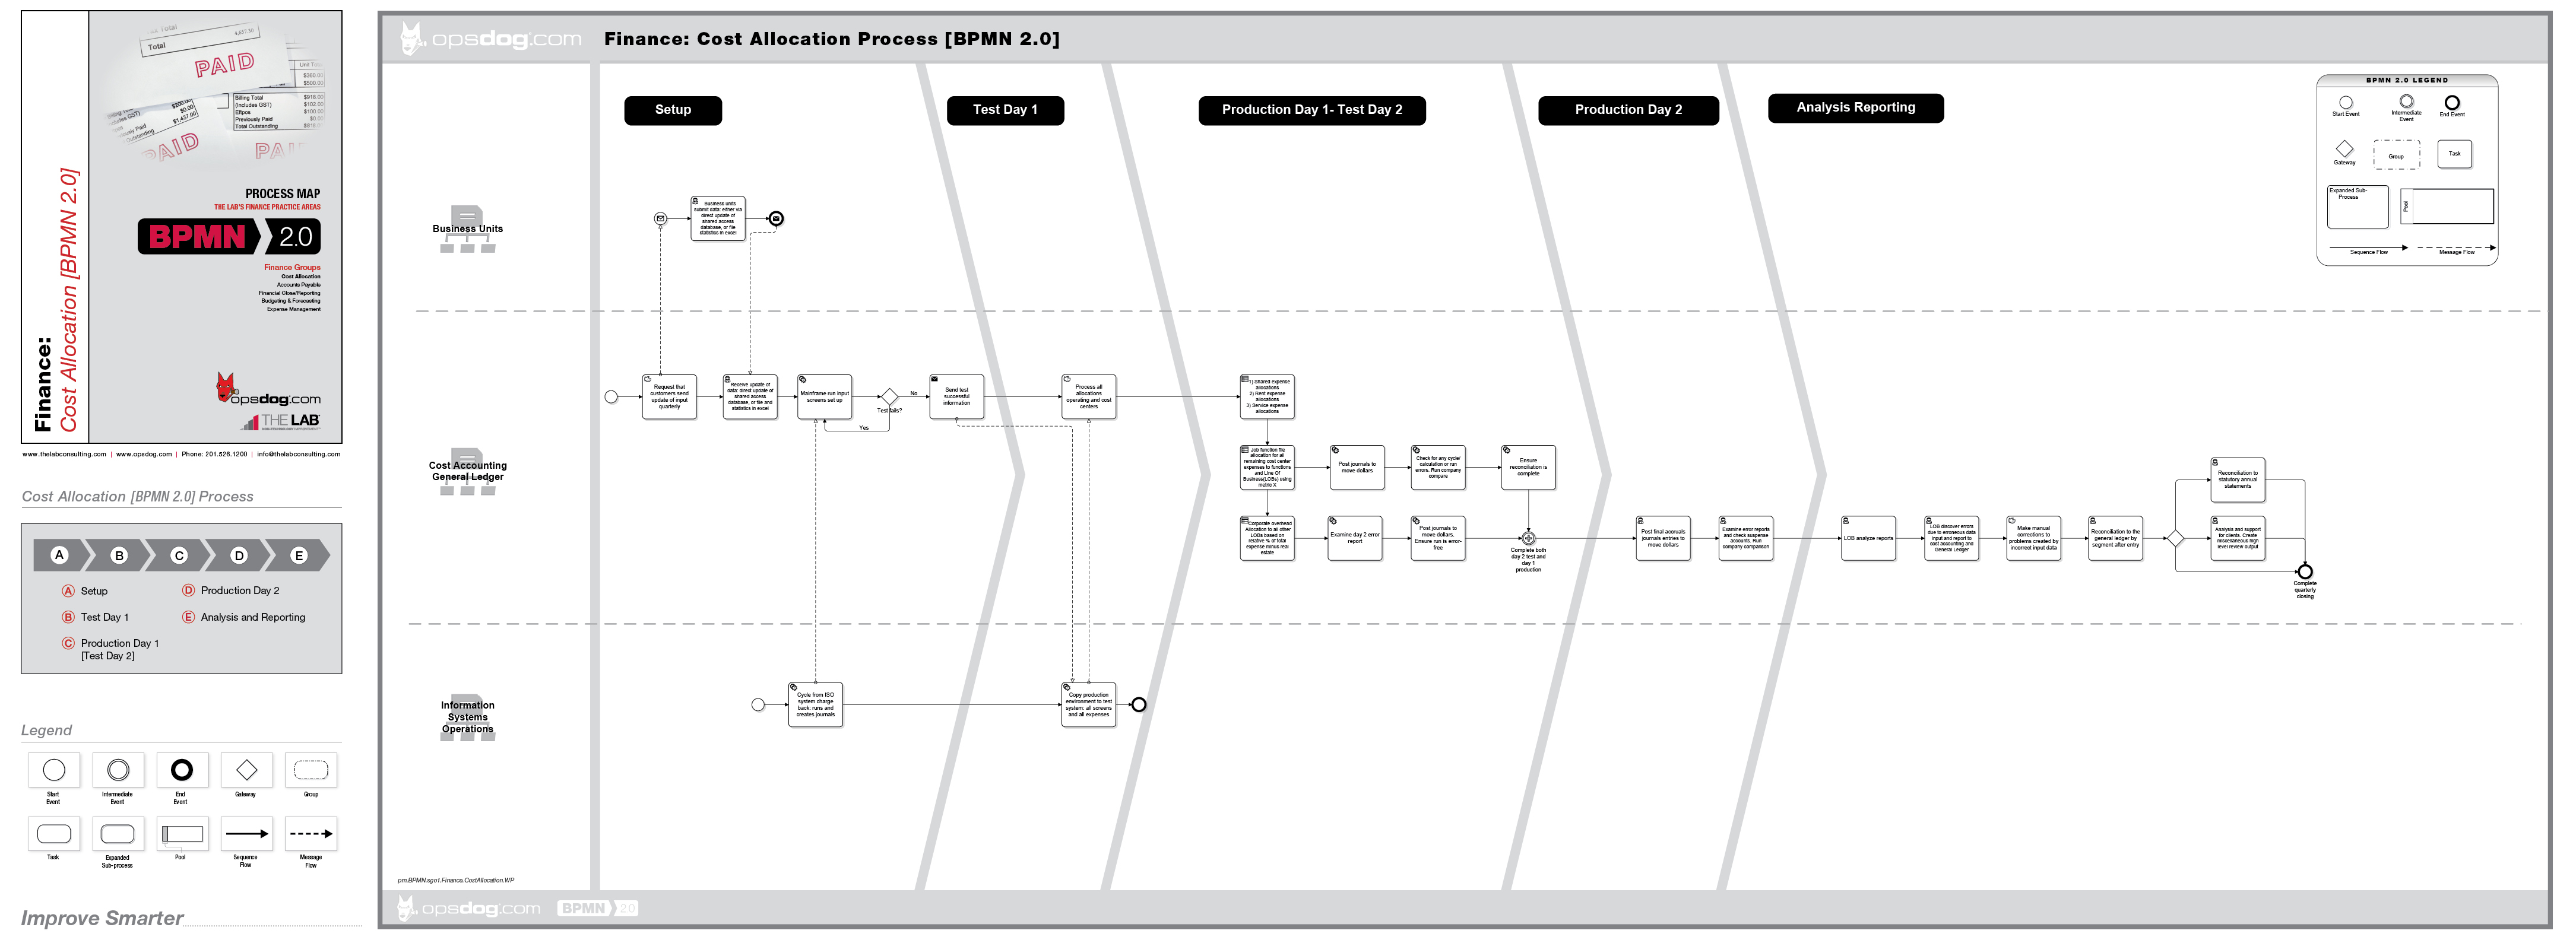 Opsdog provides business process mapping templates to corporate a sample cost allocation business process map template from opsdog flashek